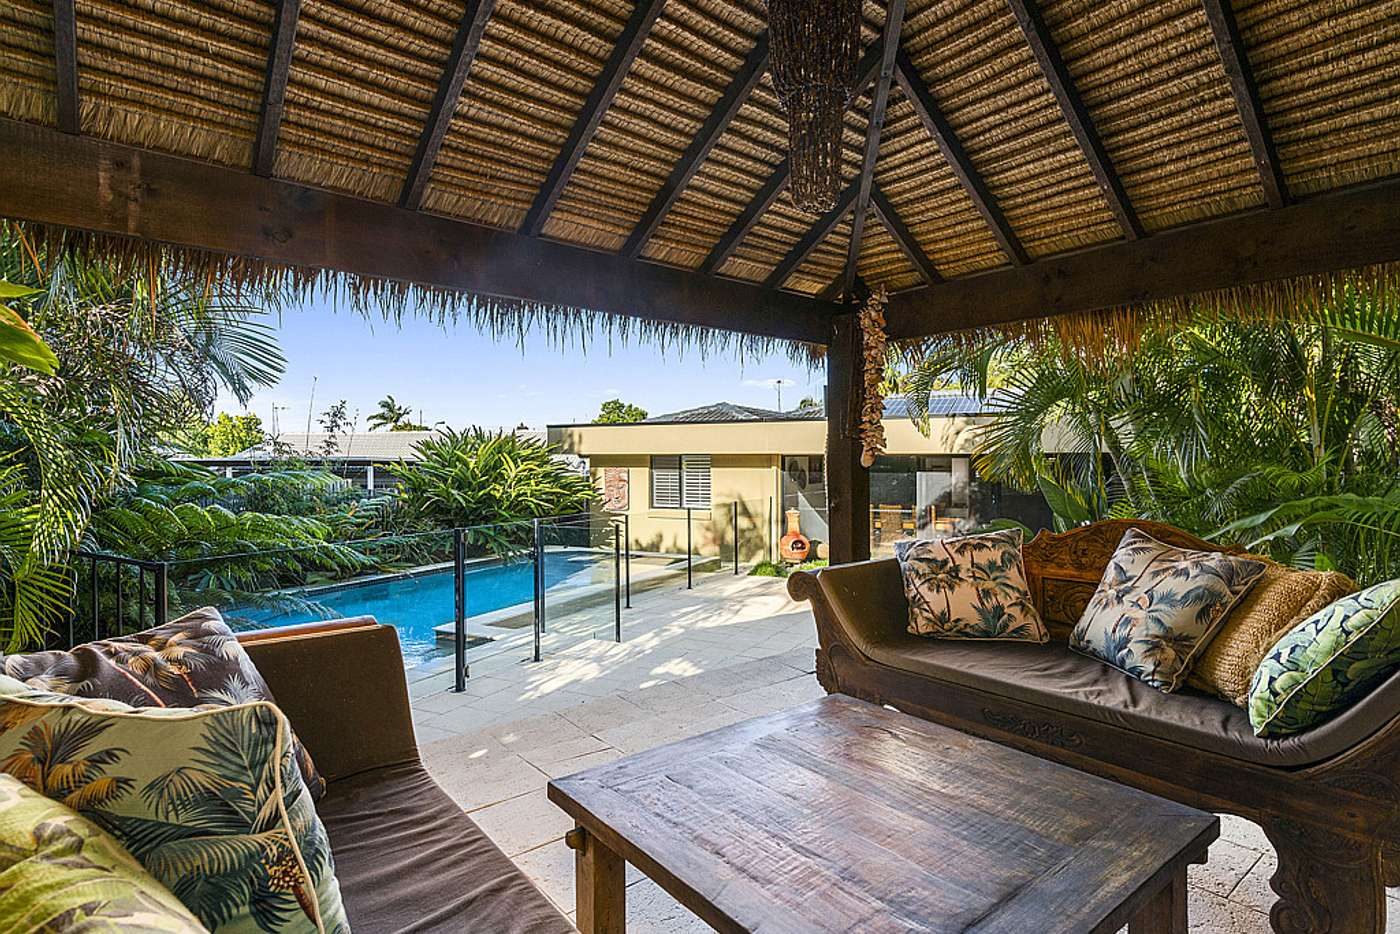 Main view of Homely house listing, 11 Coolibah Drive, Palm Beach QLD 4221